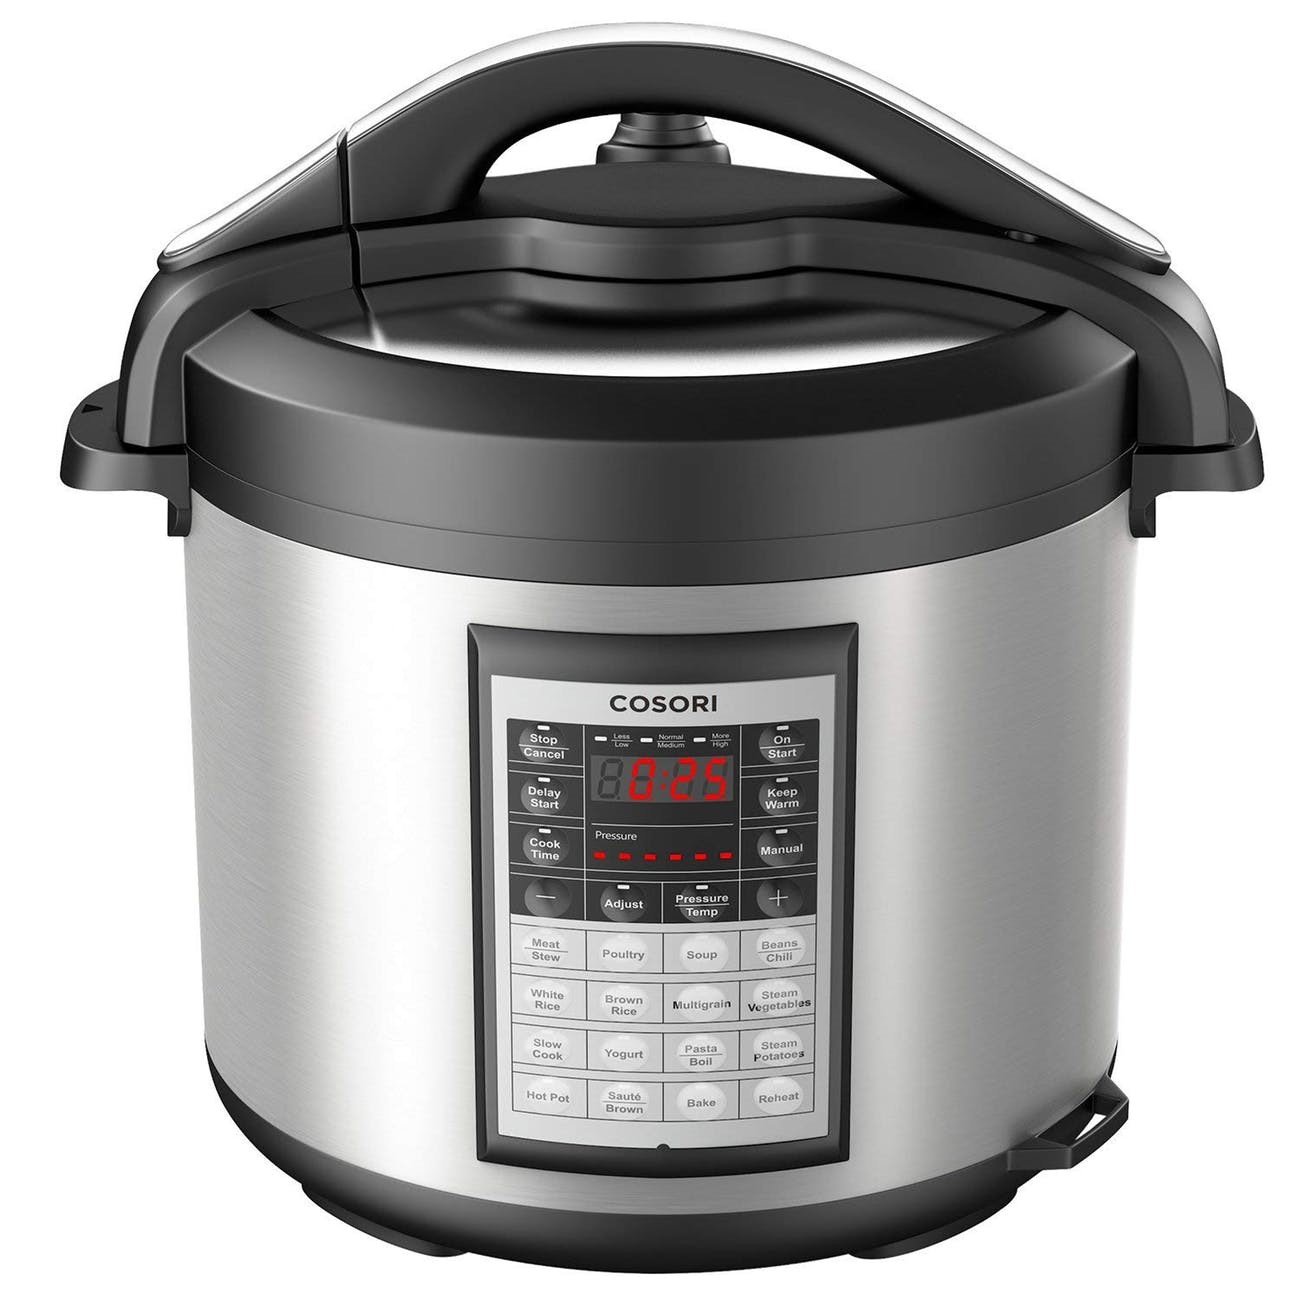 Healthy MultiPot 9-in-1 Programmable stylish Pressure Cooker 6 Quarts